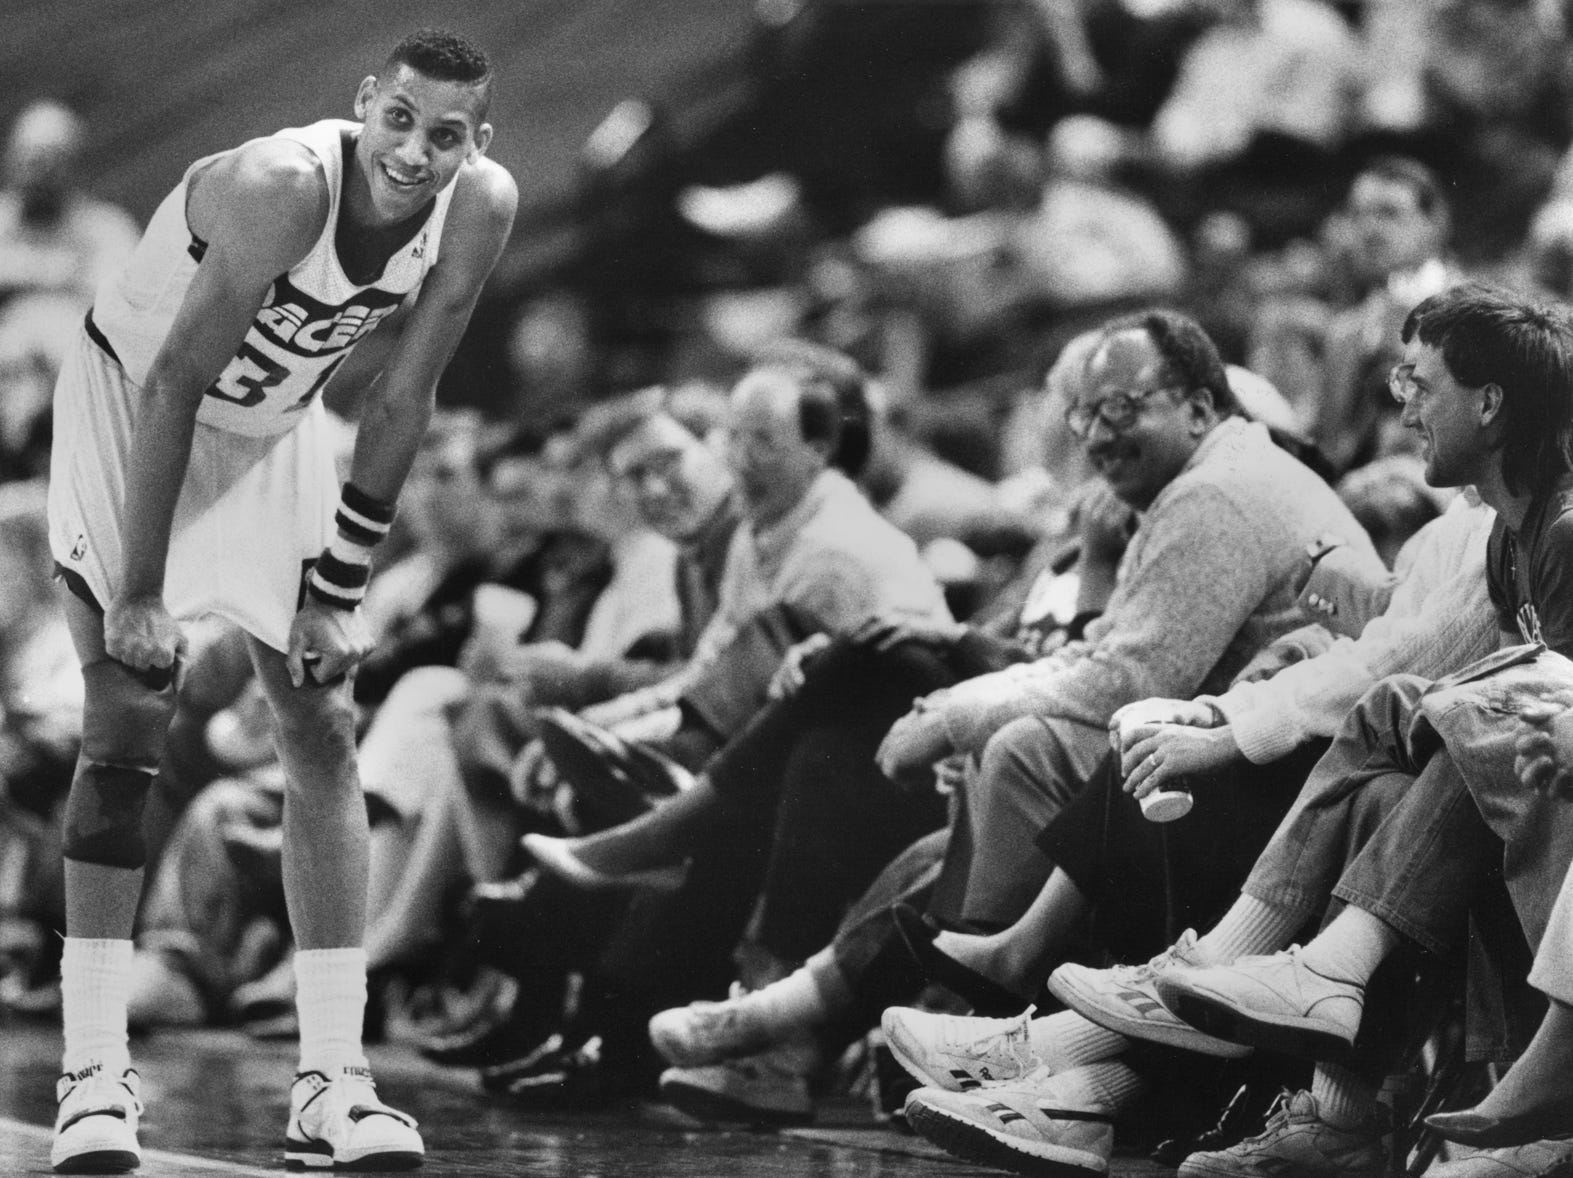 Reggie Miller shares a laugh with fans at MSA during a break in action in the game against Miami on Jan. 29, 1990.